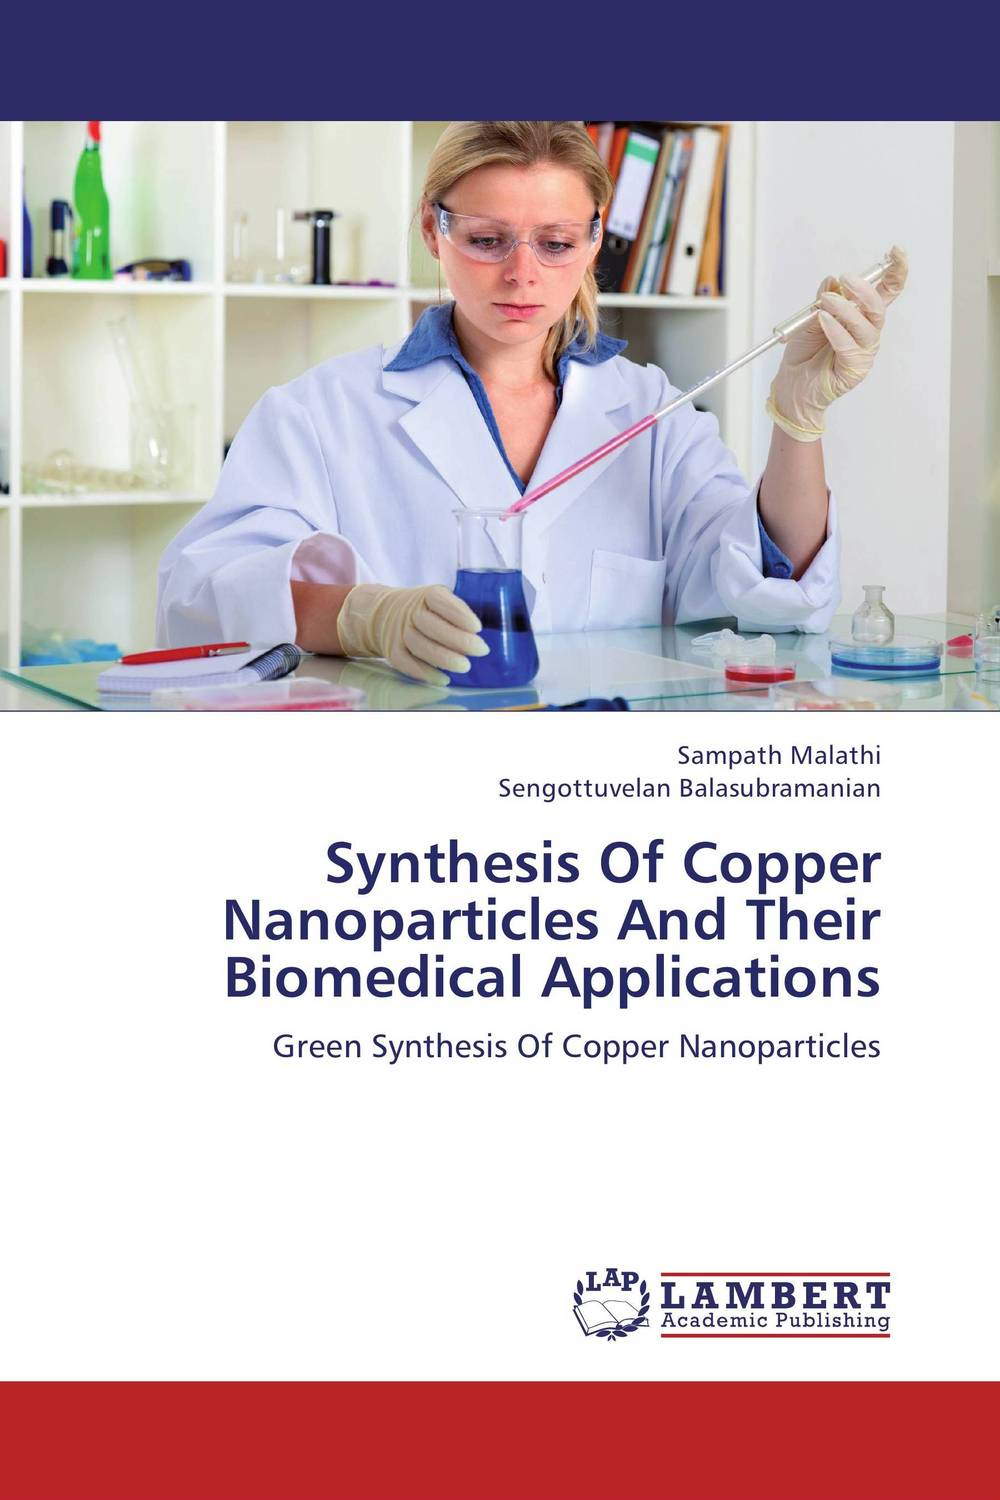 Synthesis Of Copper Nanoparticles And Their Biomedical Applications new professional lx1010bs digital light meter 100000 handheld lux meter